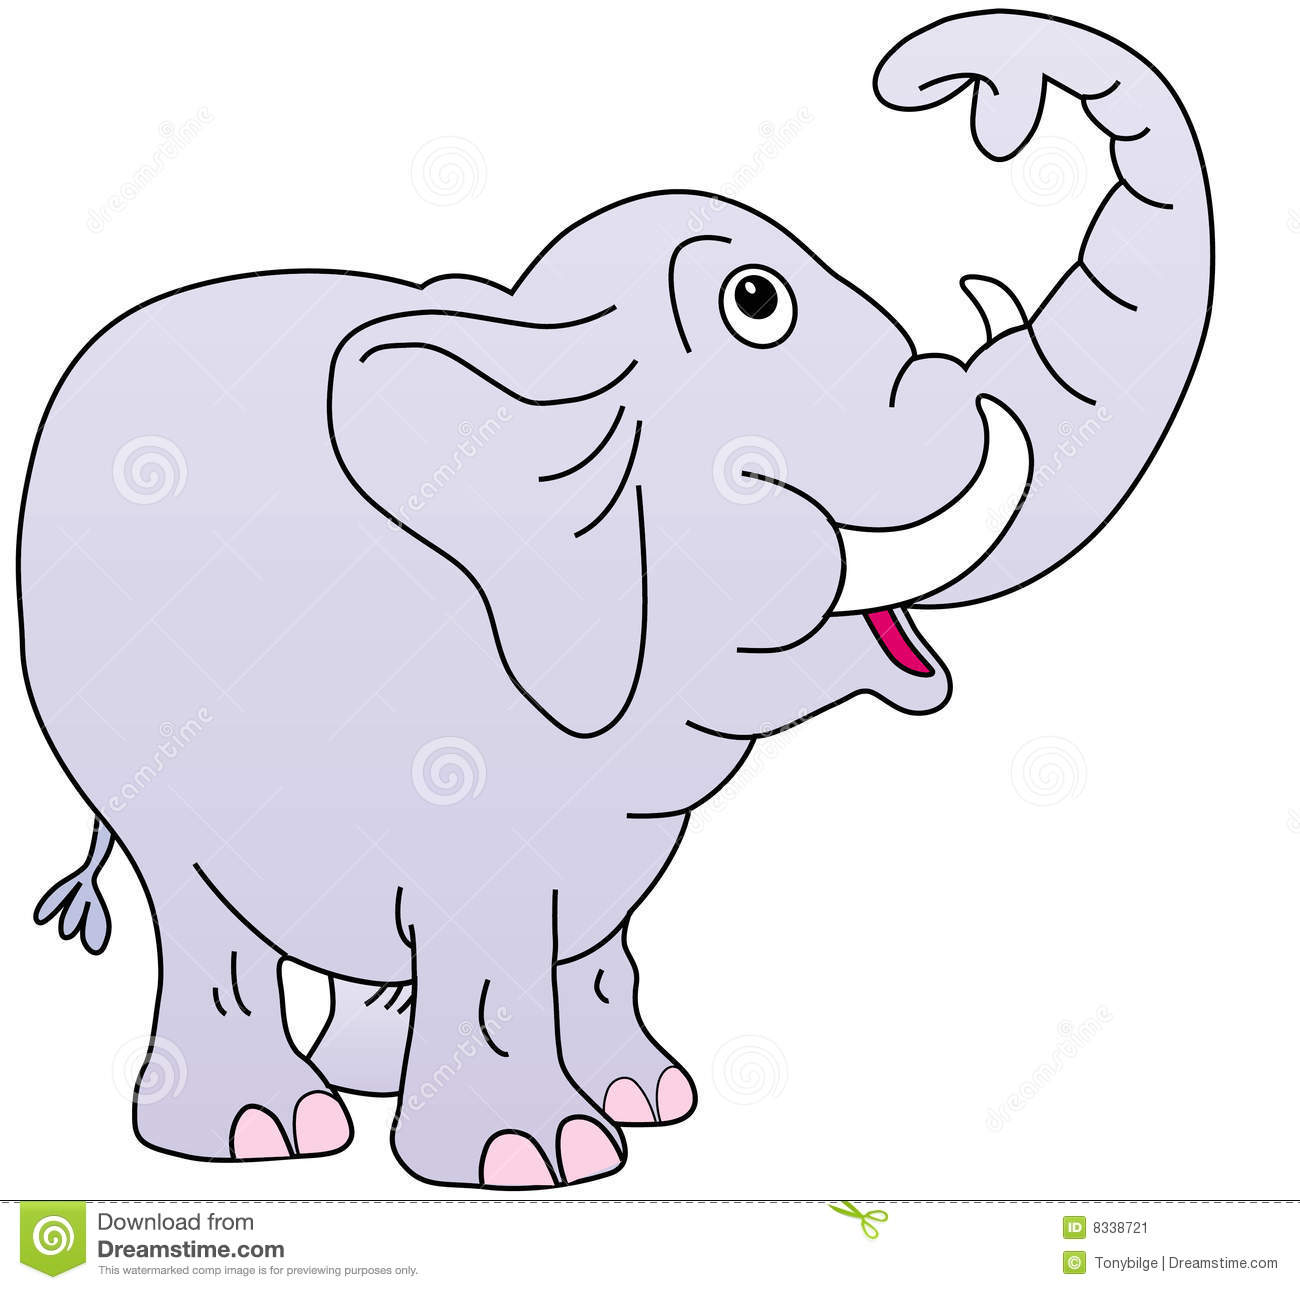 Elephant trunk up stock illustrations 90 elephant trunk up stock elephant trunk up stock illustrations 90 elephant trunk up stock illustrations vectors clipart dreamstime biocorpaavc Images